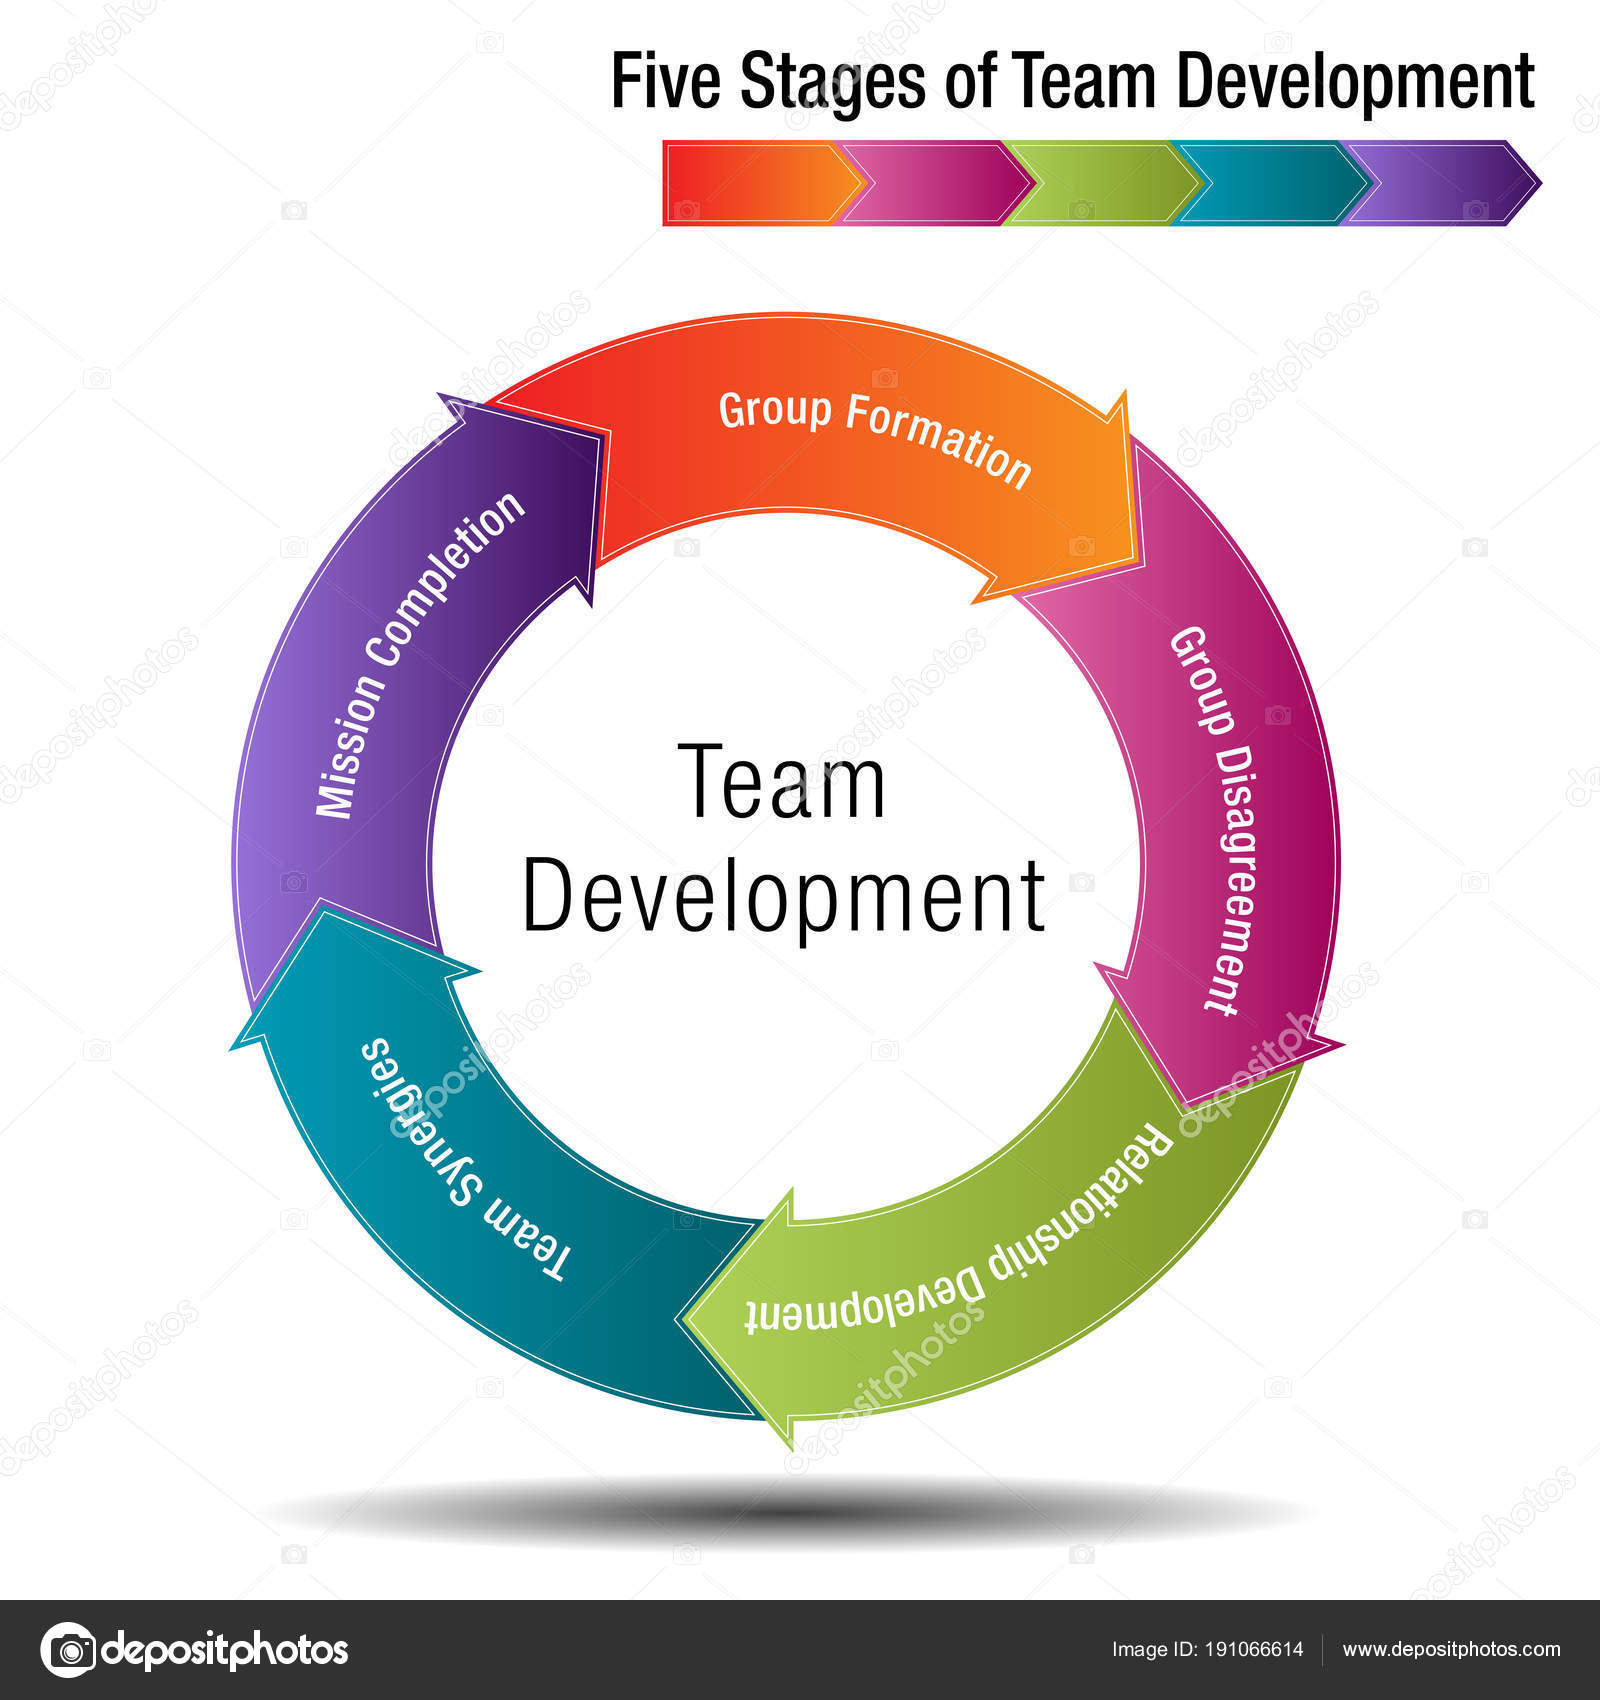 Five Stages Of Team Development